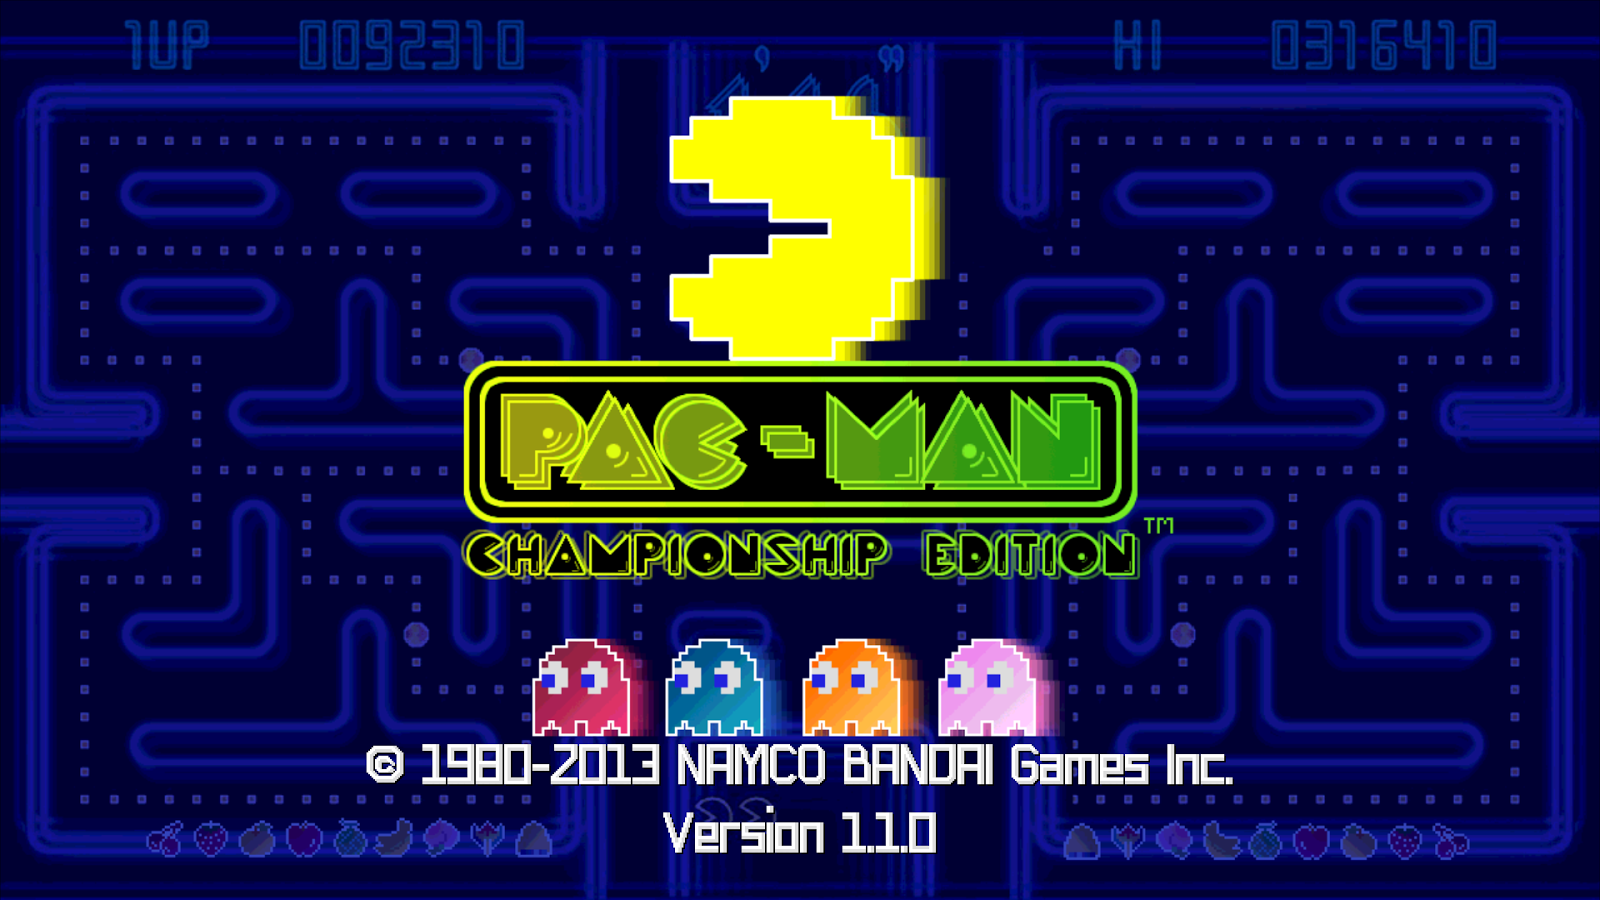 PAC-MAN Championship Edition Screenshot